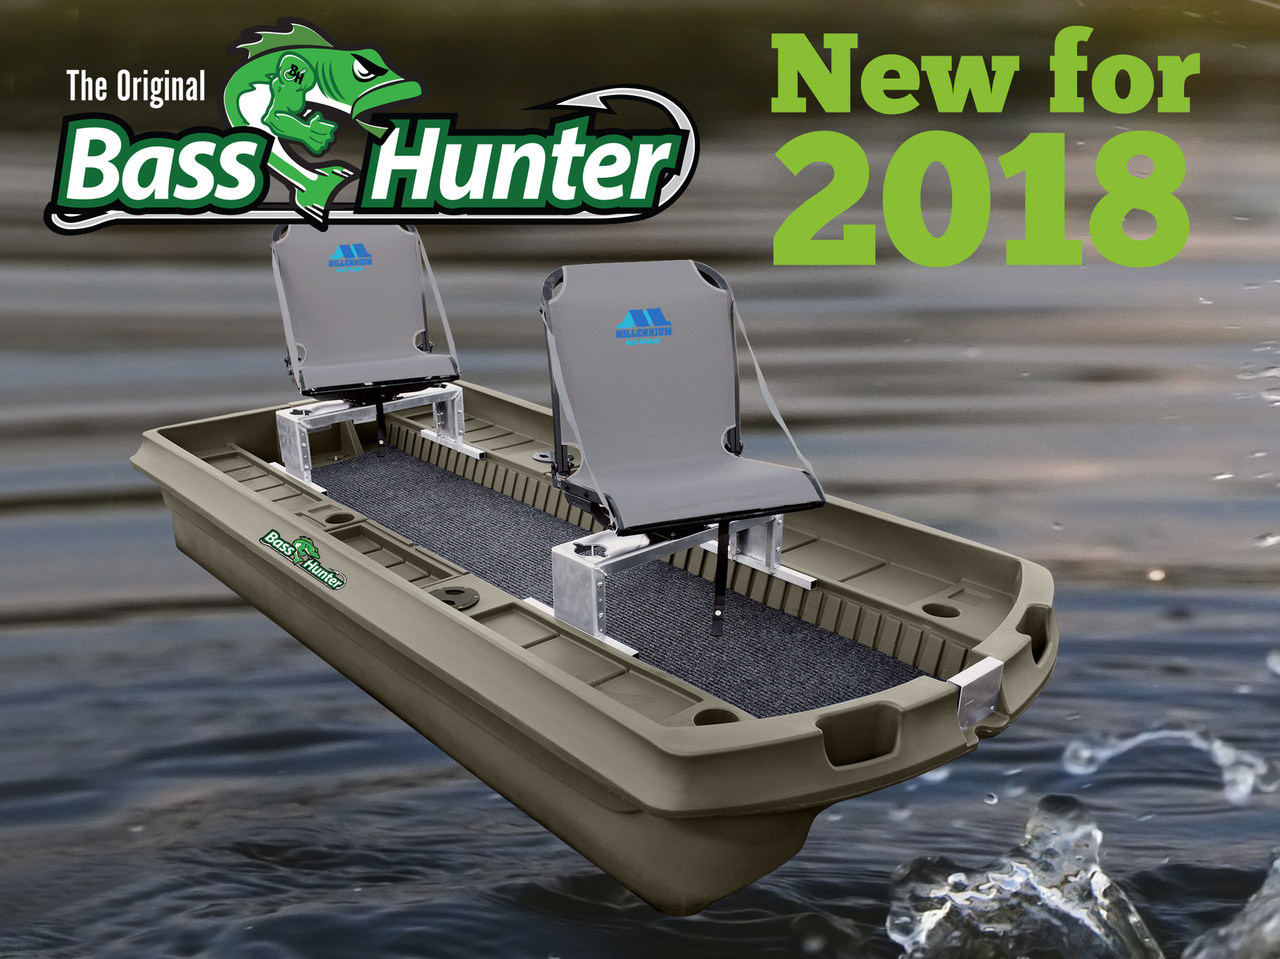 Bass Hunter Boat